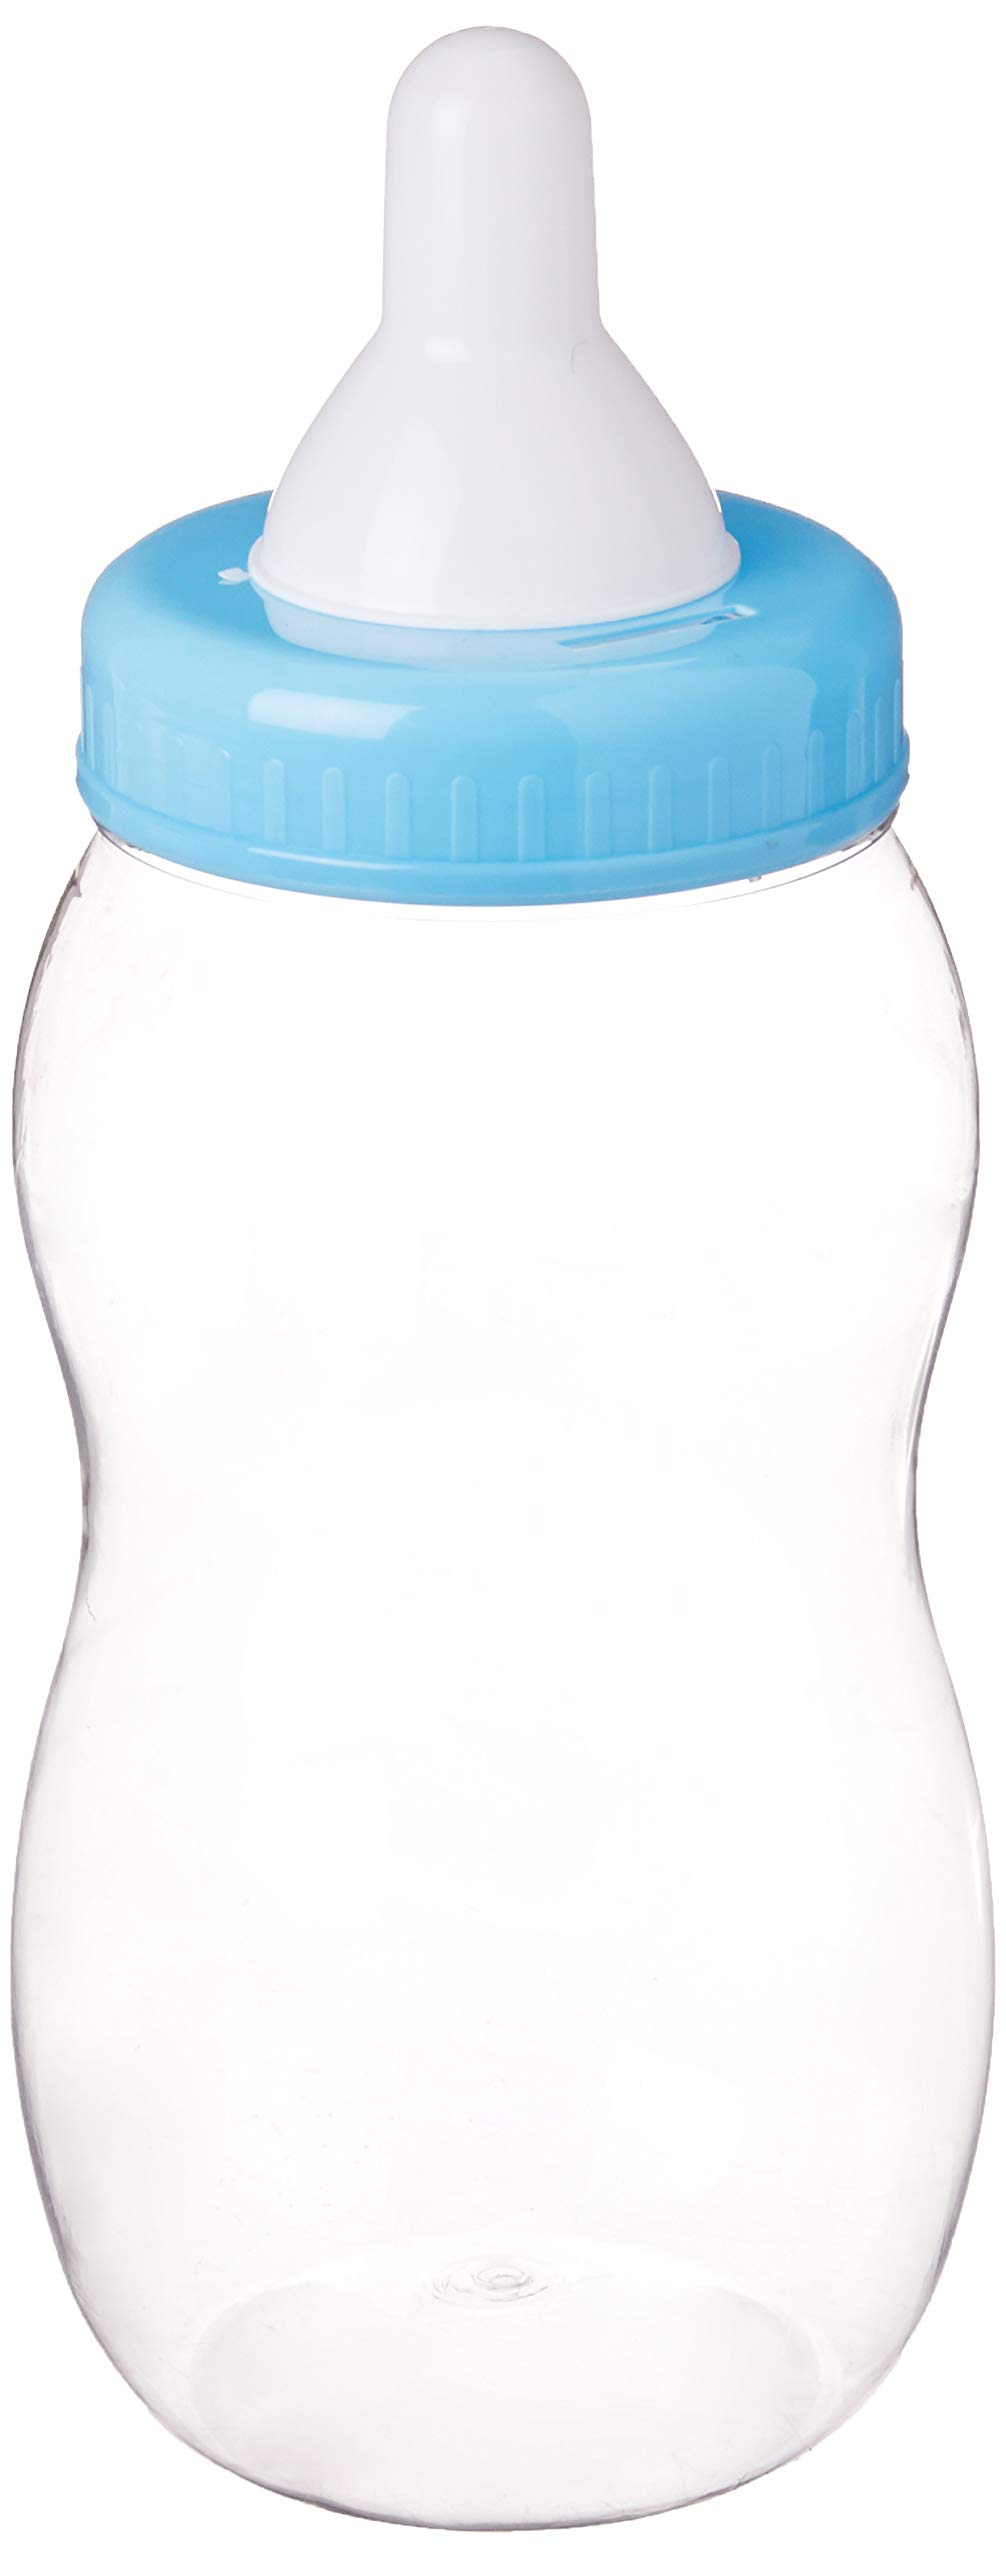 Homeford FPF000000CP046LB Bottle, 15'', Light Blue by Homeford